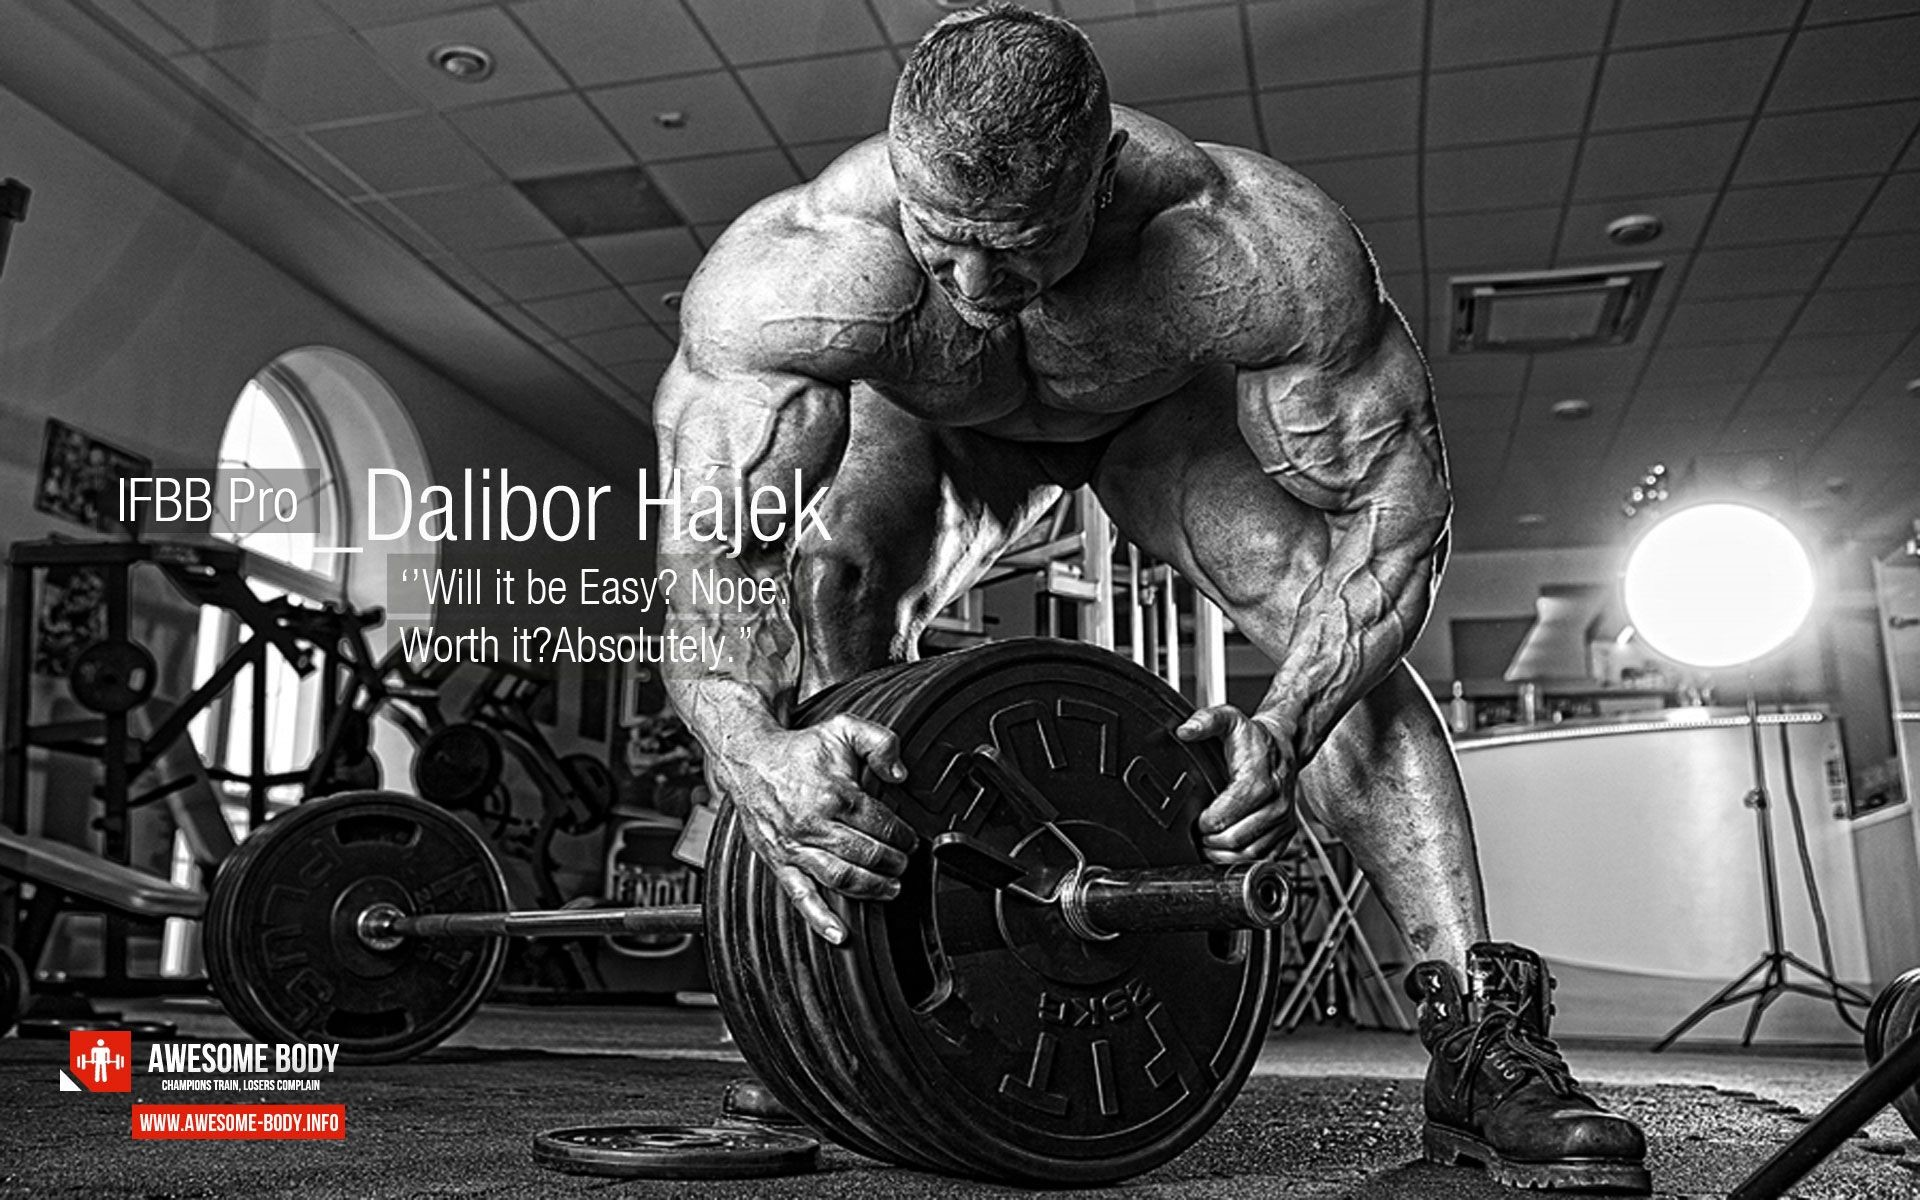 Res: 1920x1200, HD Wallpapers - - Dalibor Hajek - Bodybuilding News & Tips - Health &  Nutrition - Motivation - Wallpapers - Pictures